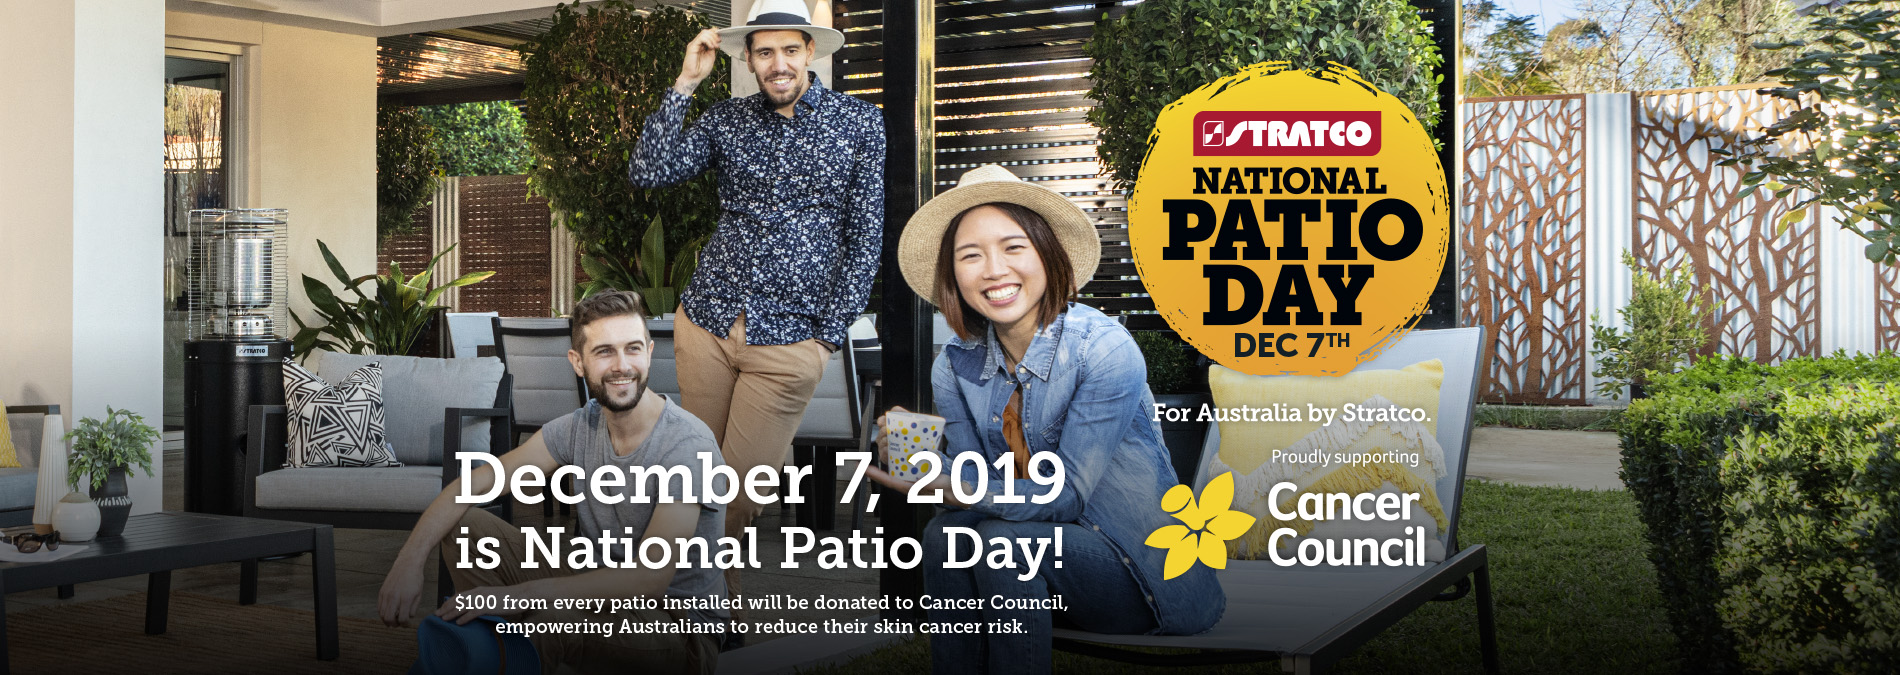 Rectangle-ad-stratco-national-patio-day